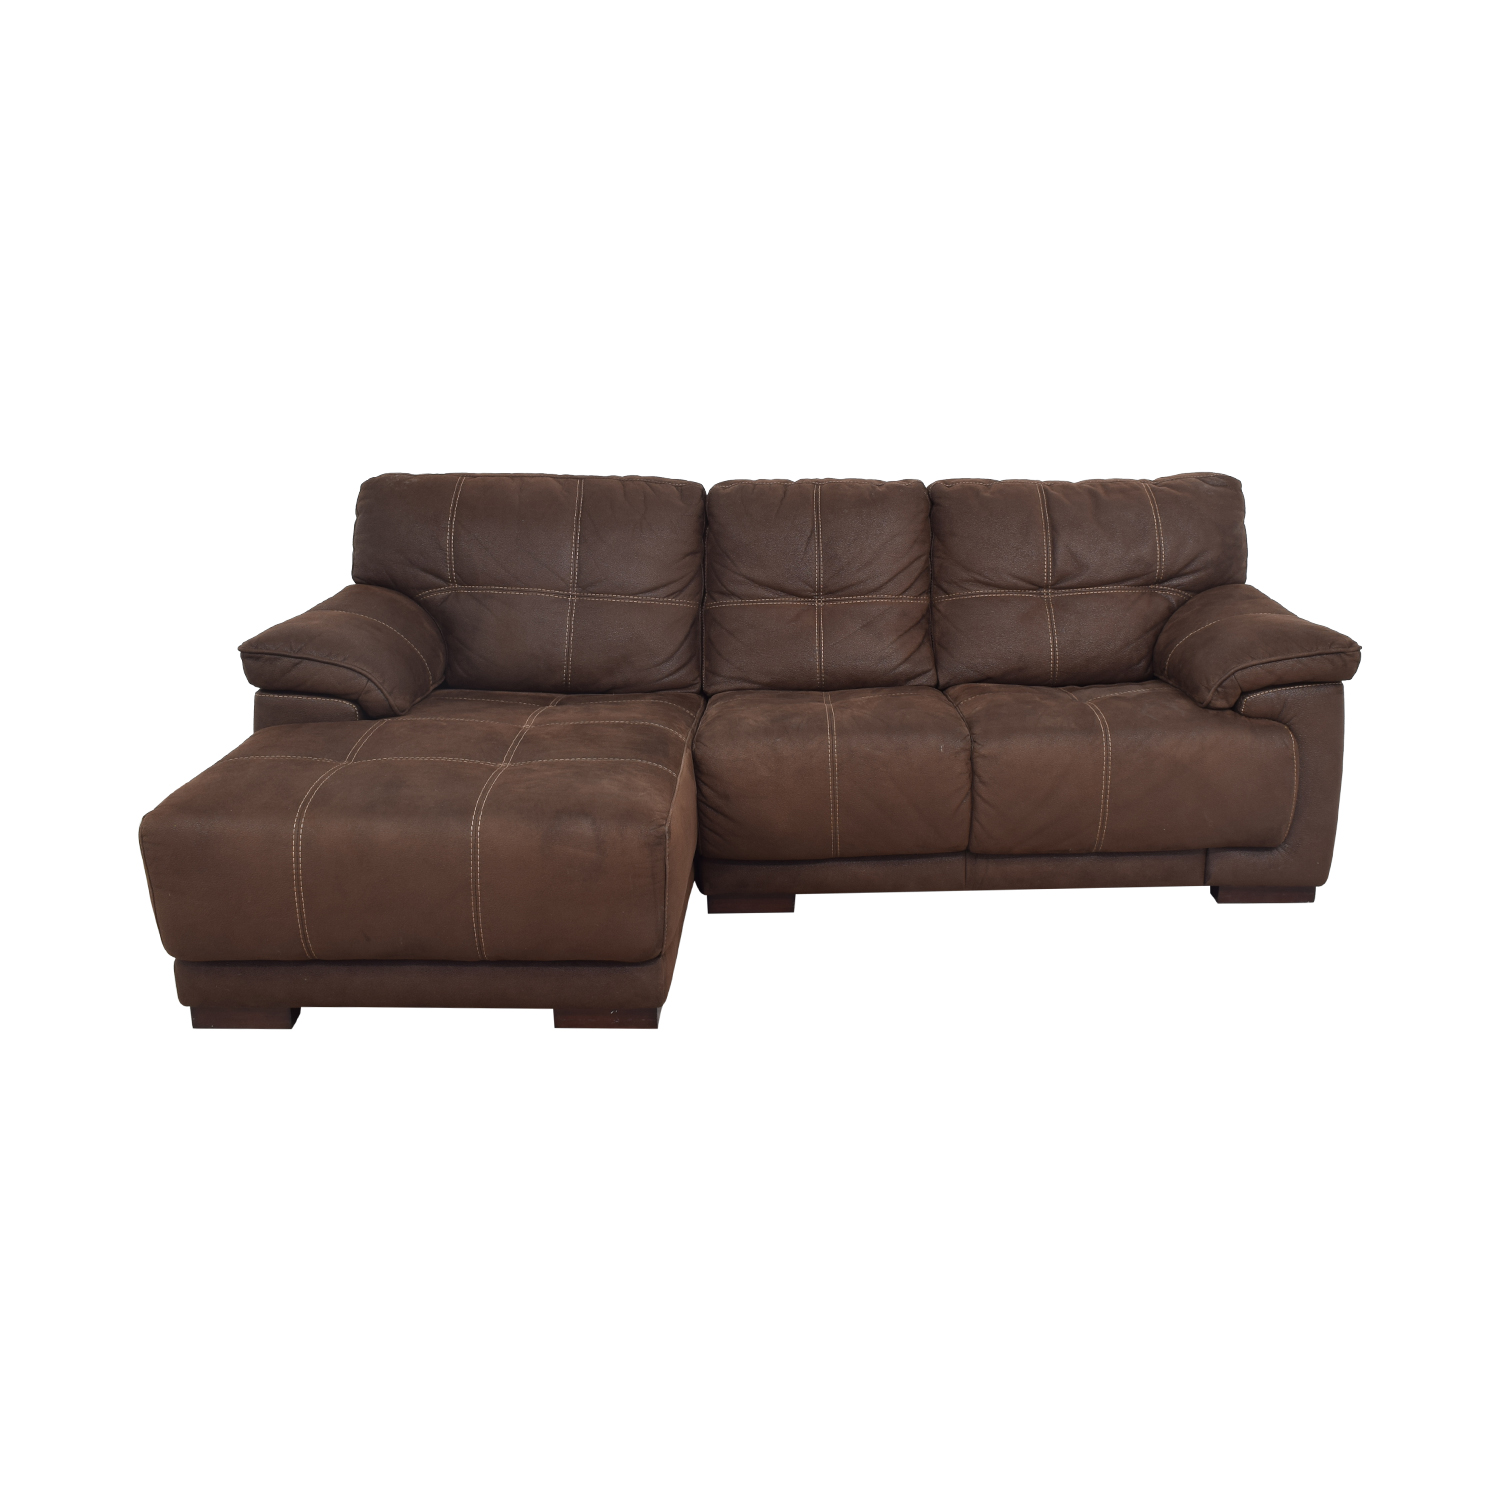 shop Raymour & Flanigan Raymour & Flanigan Microfiber Sectional Sofa online